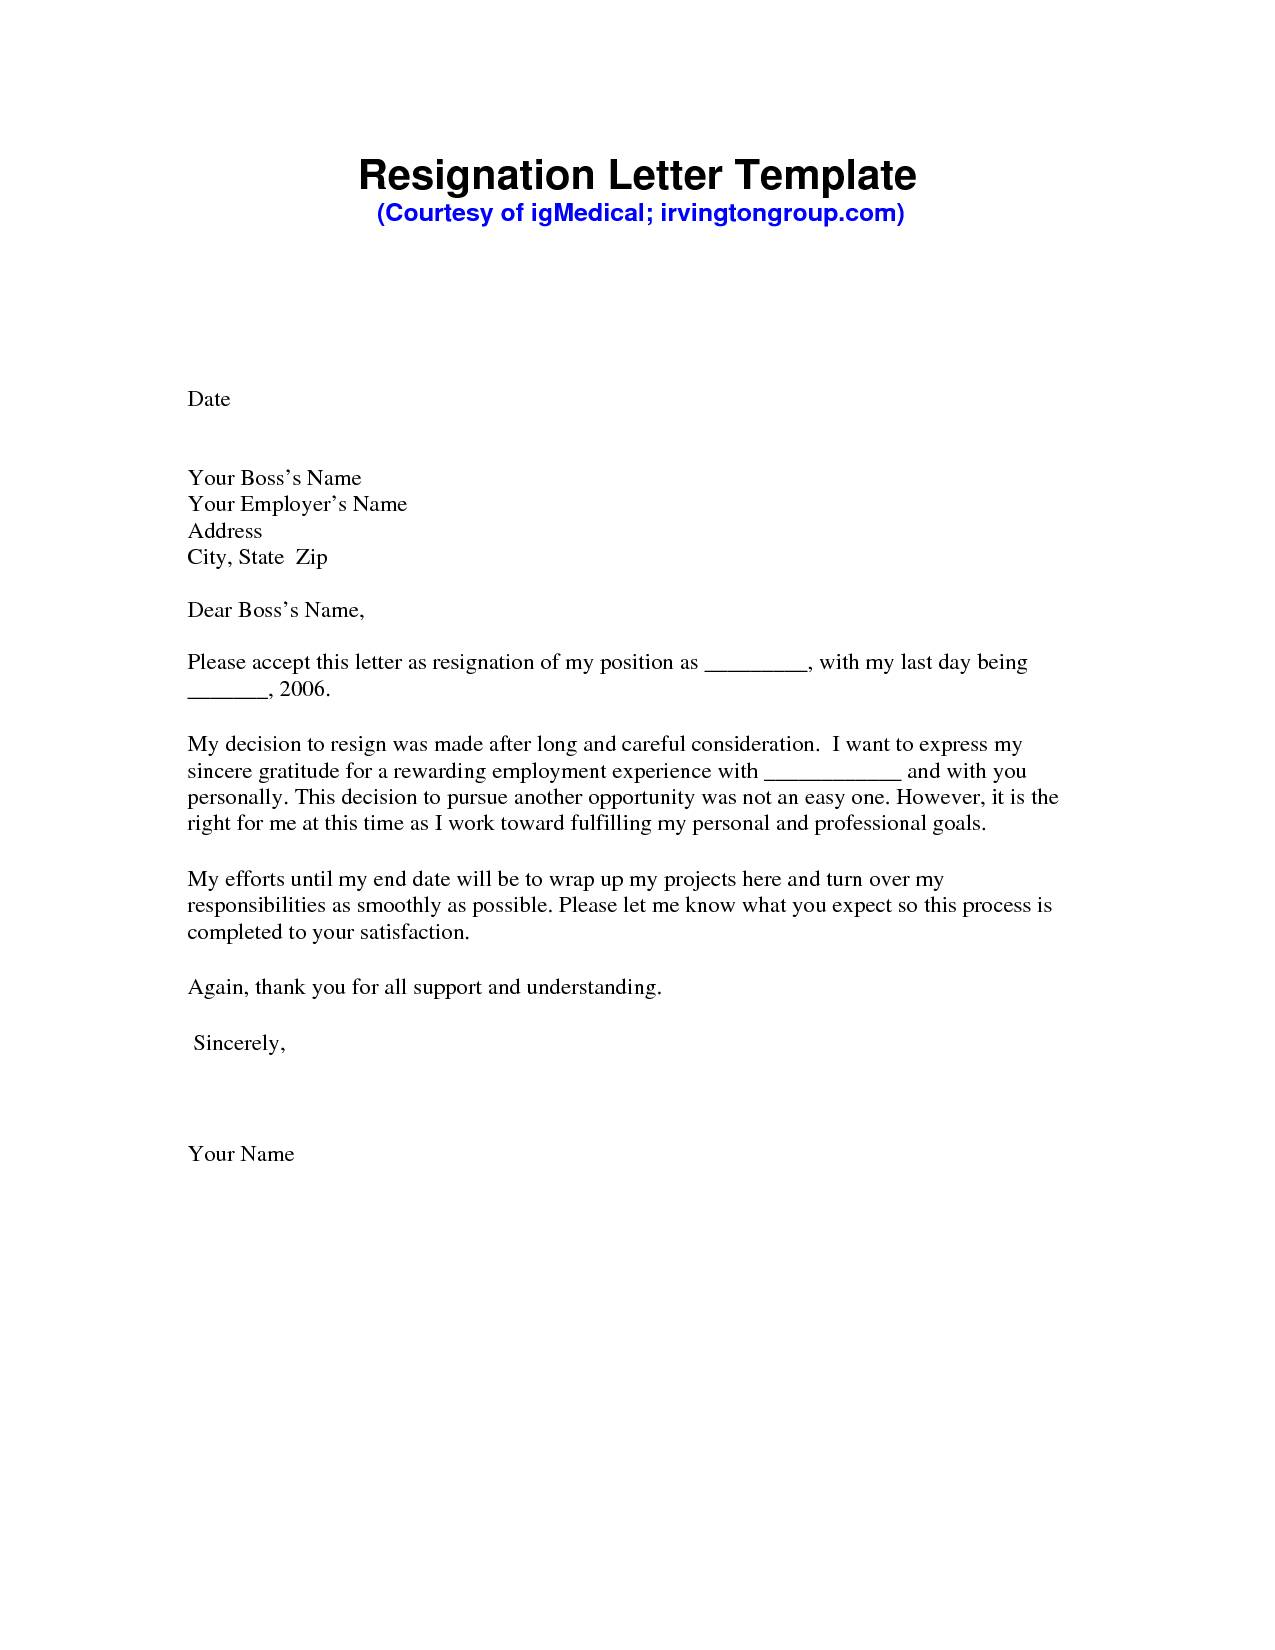 Resignation Letter Sample Template Free